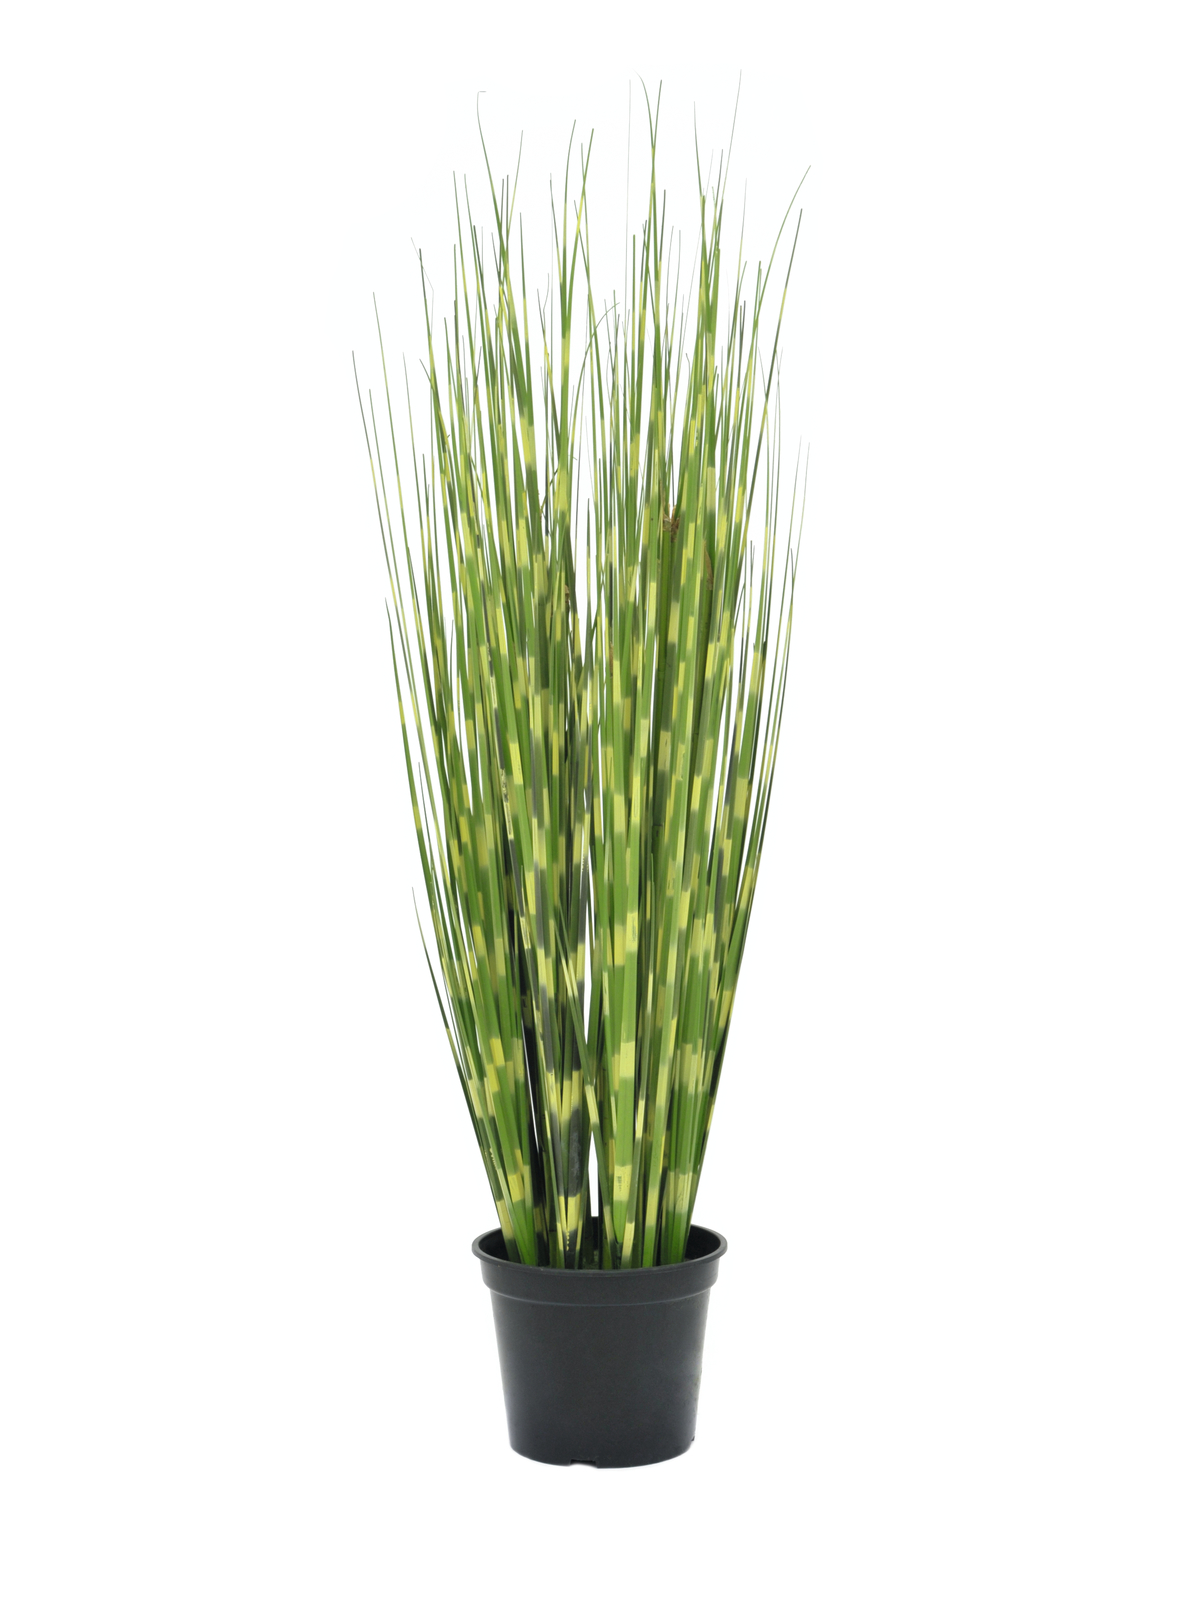 EUROPALMS Zebra erba artificiale, 90cm